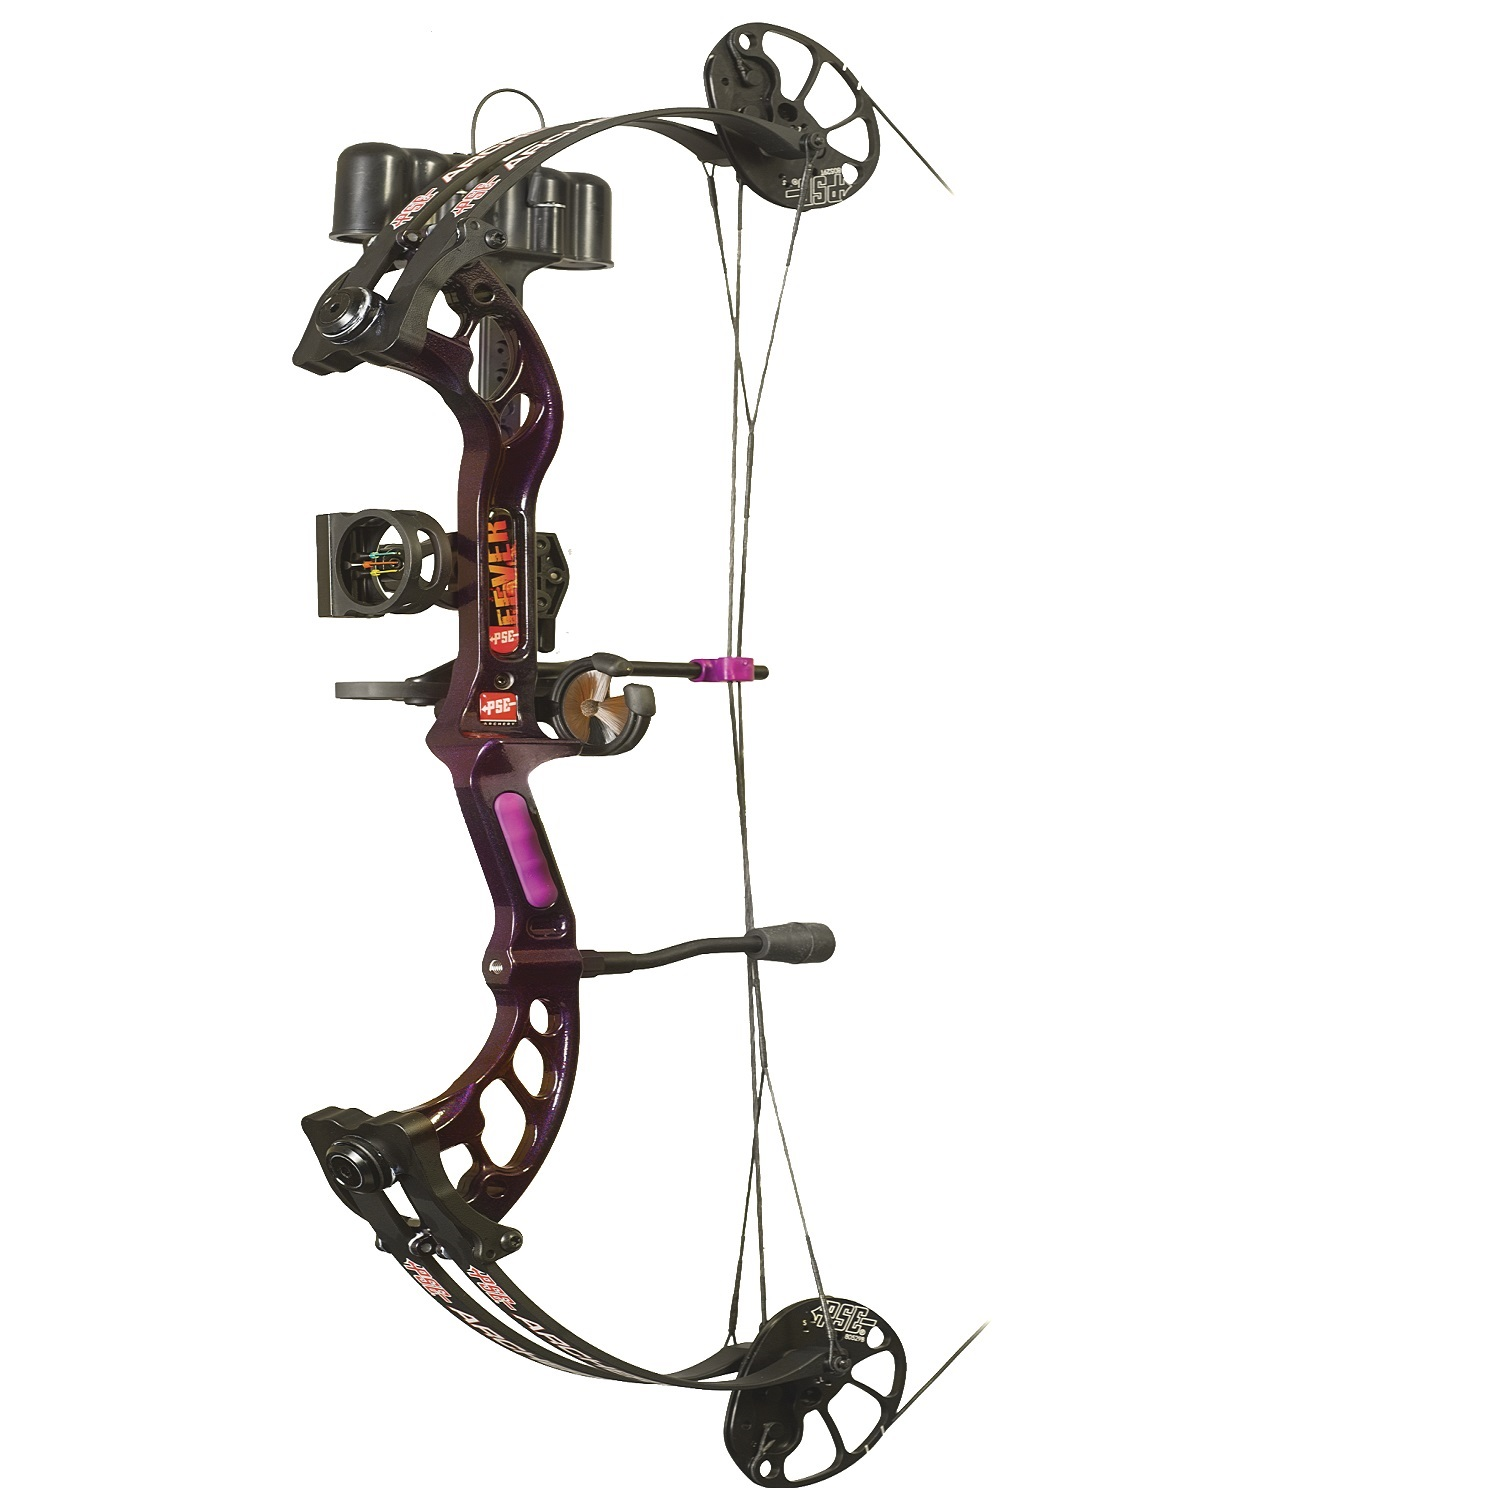 PSE Ready to Shoot, Fever RH Purple Rain 50 Lbs